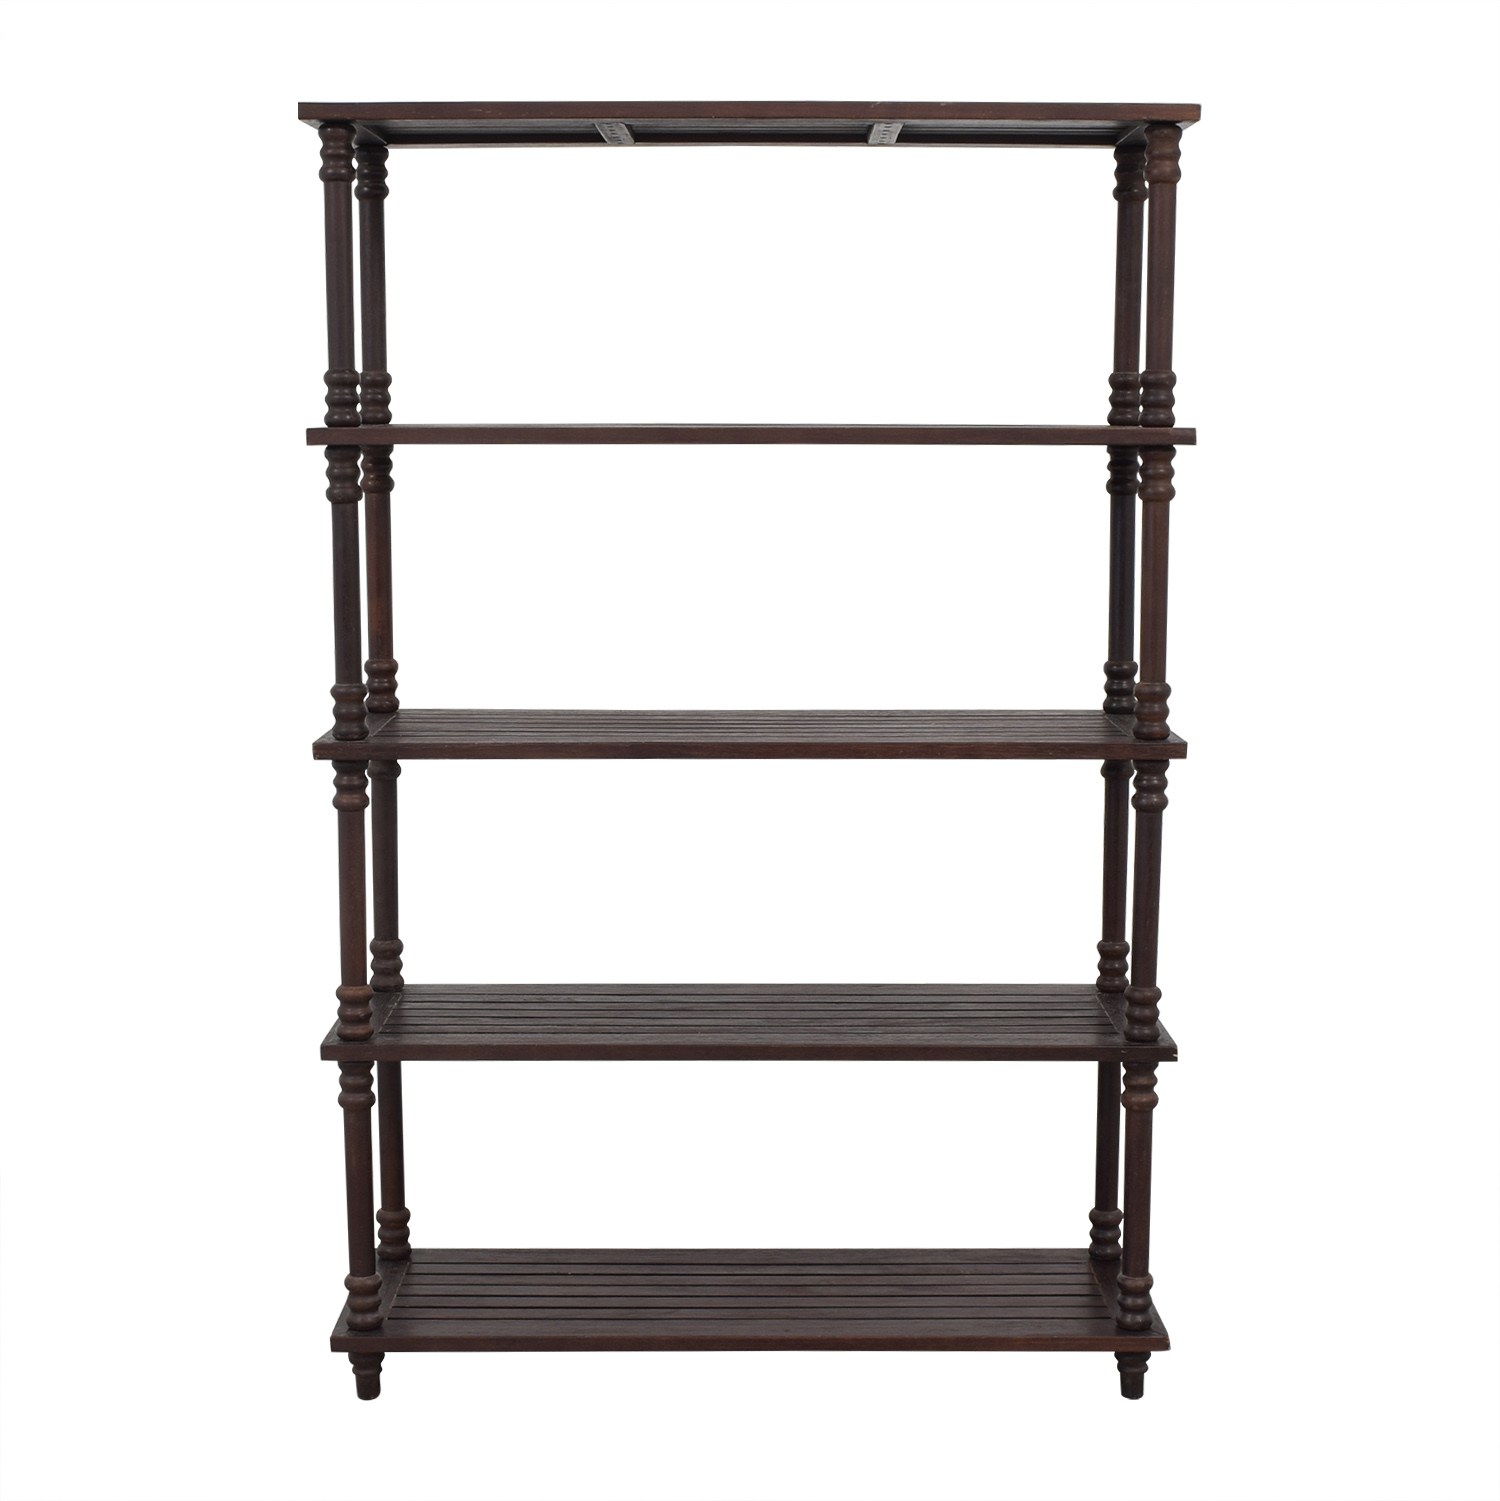 Ballard Designs Ballard Designs Floating Bookcase price